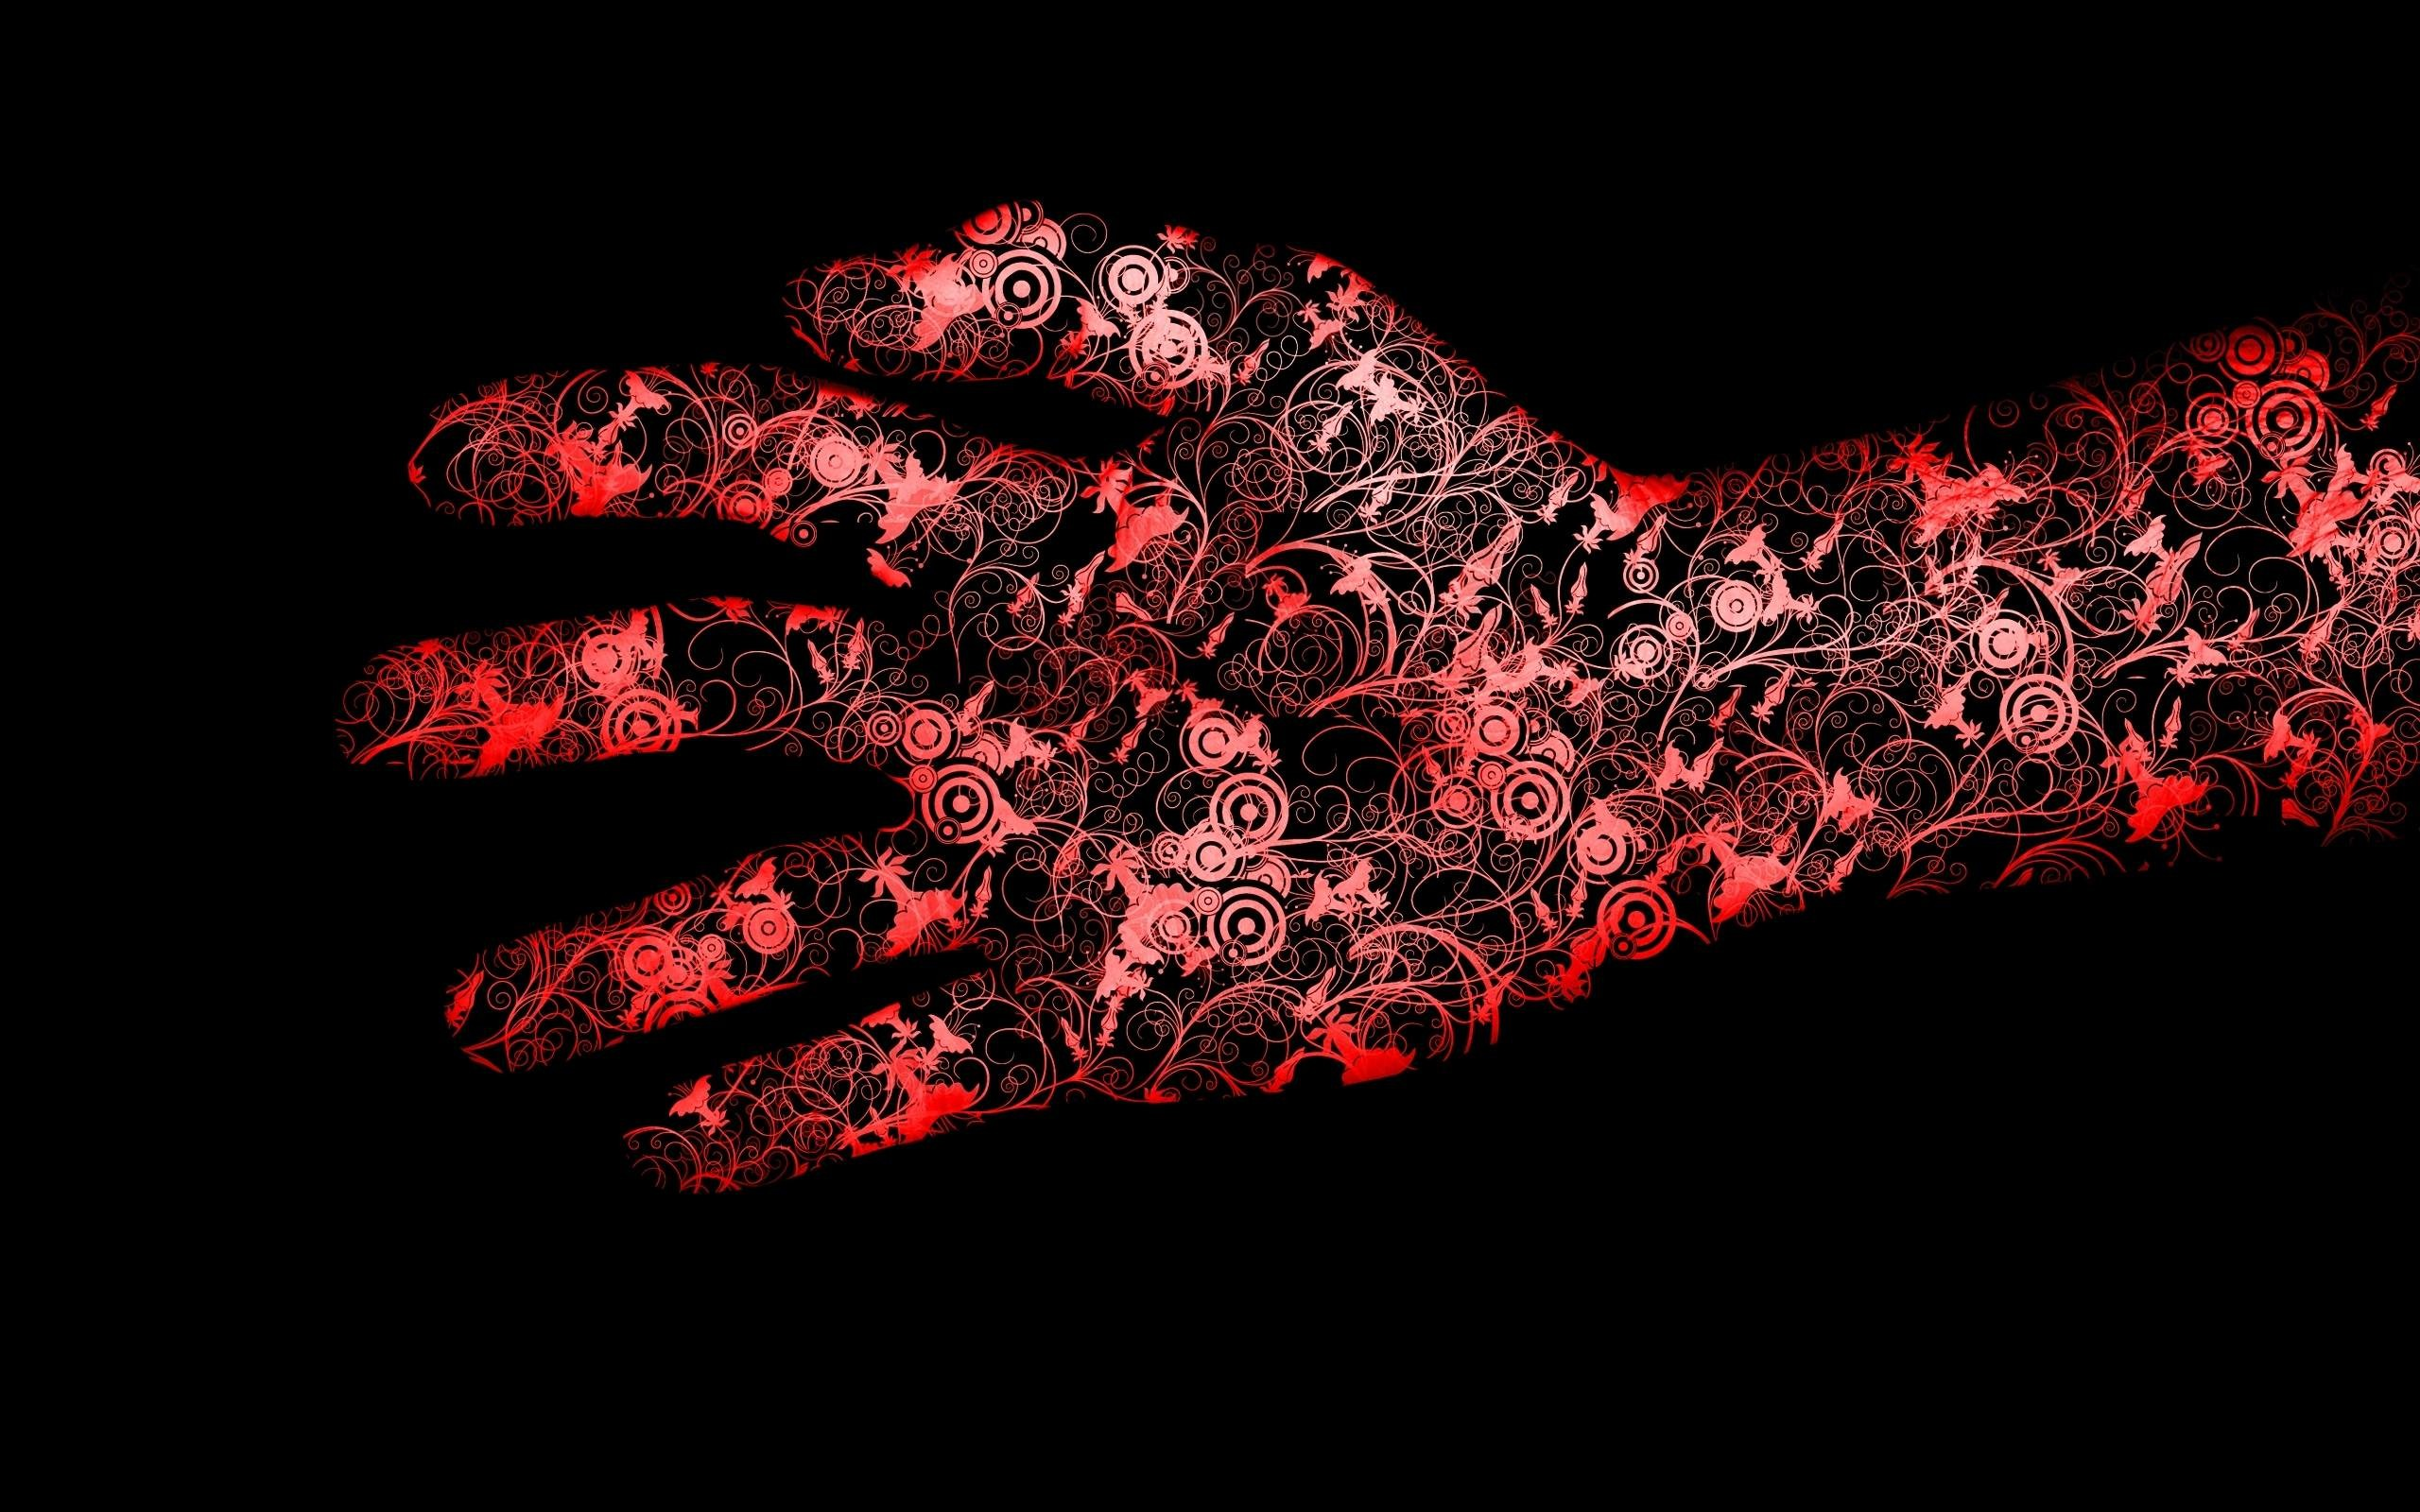 Wallpapers For > Abstract Black And Red Wallpaper